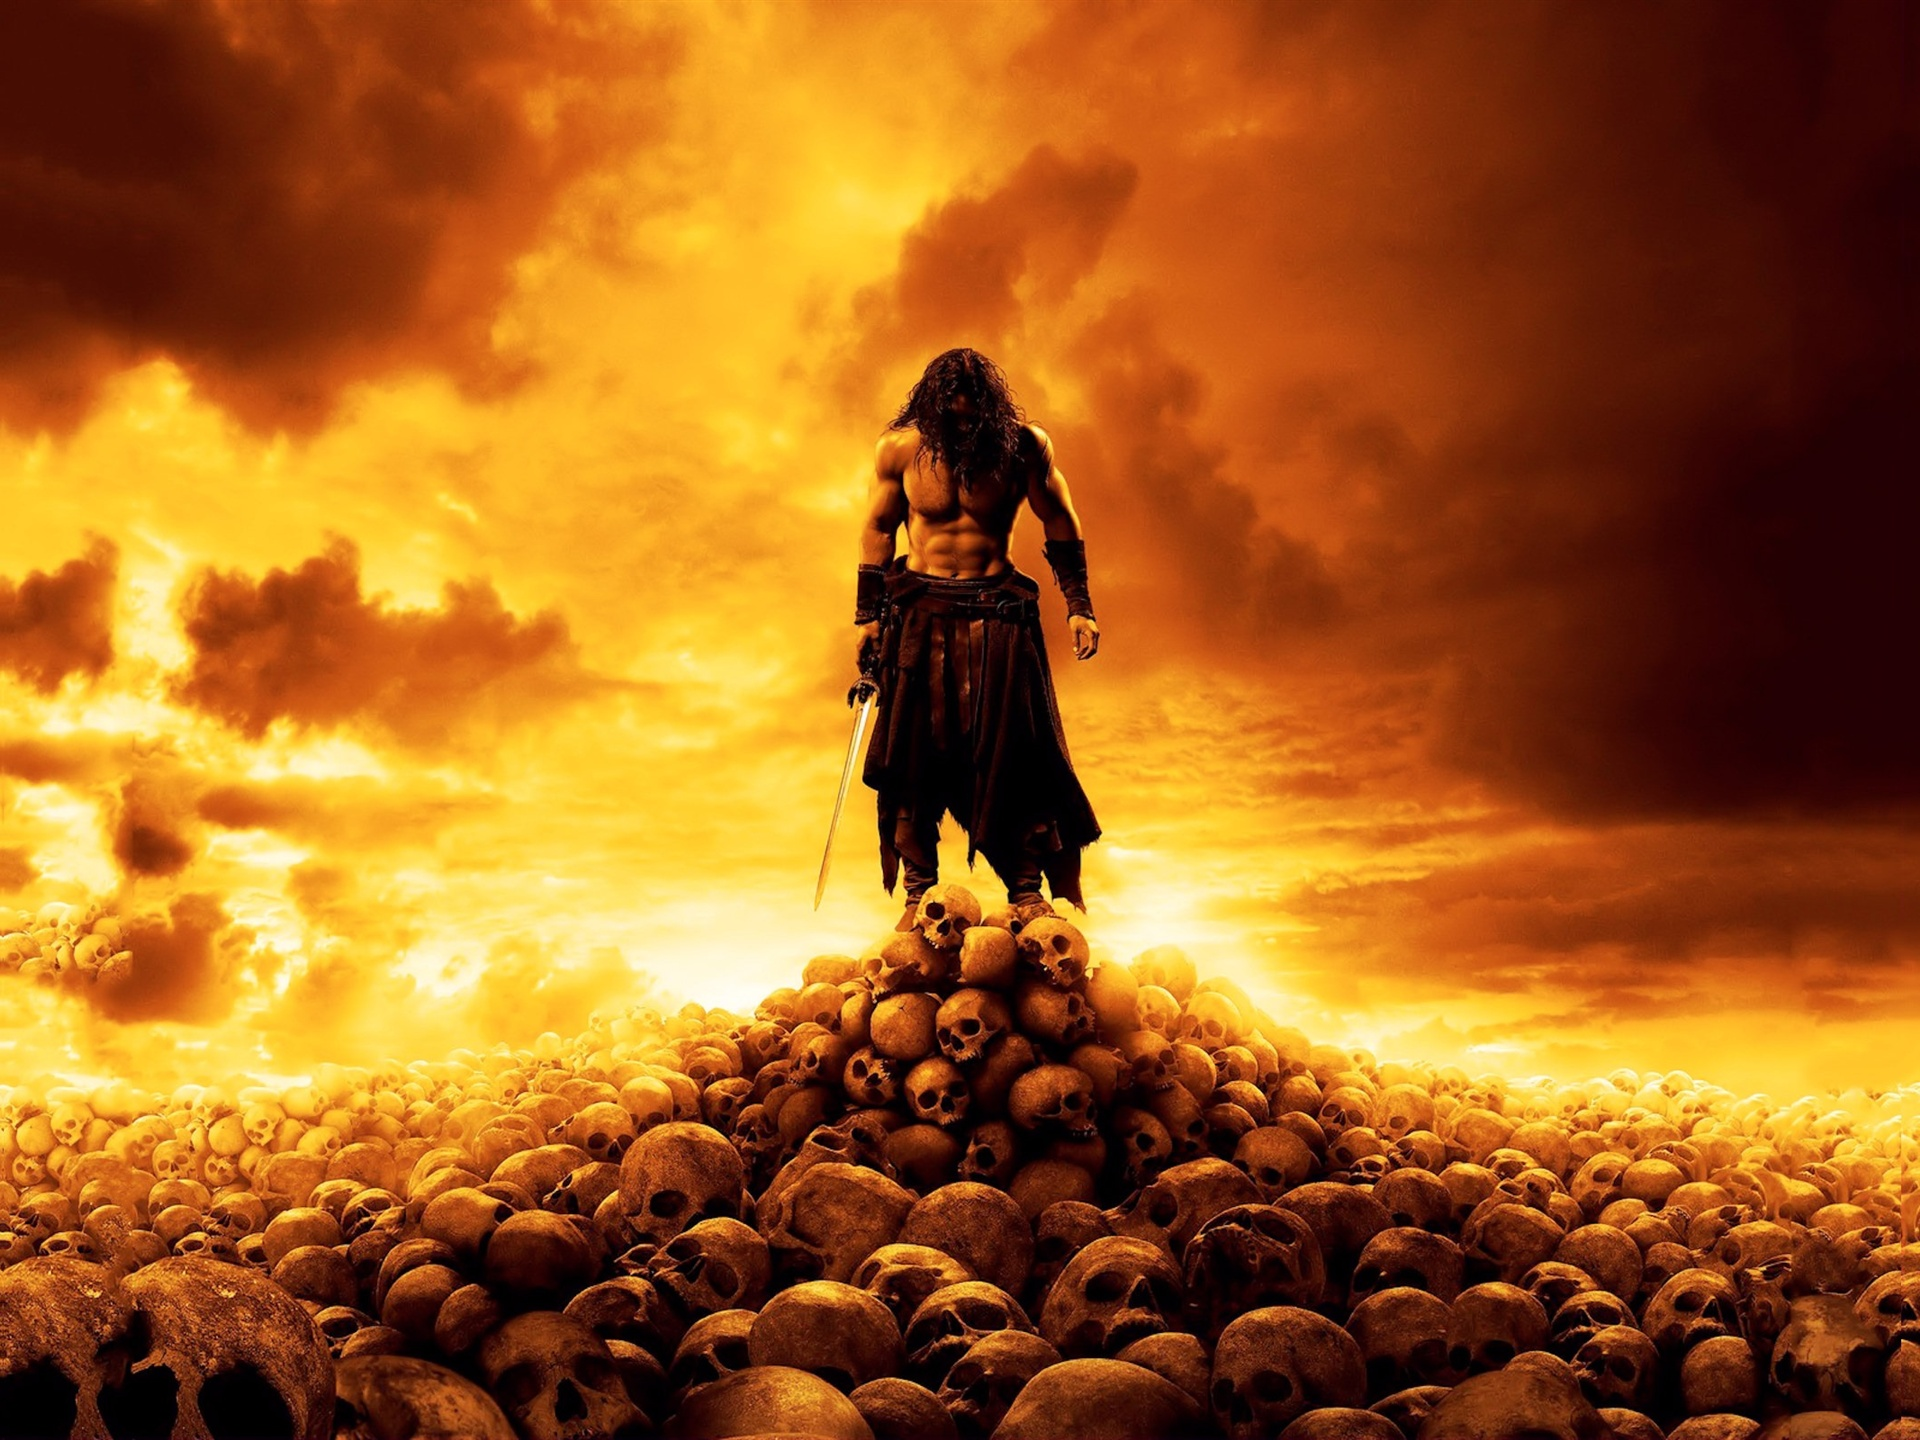 Conan the Barbarian 2011 1920x1440